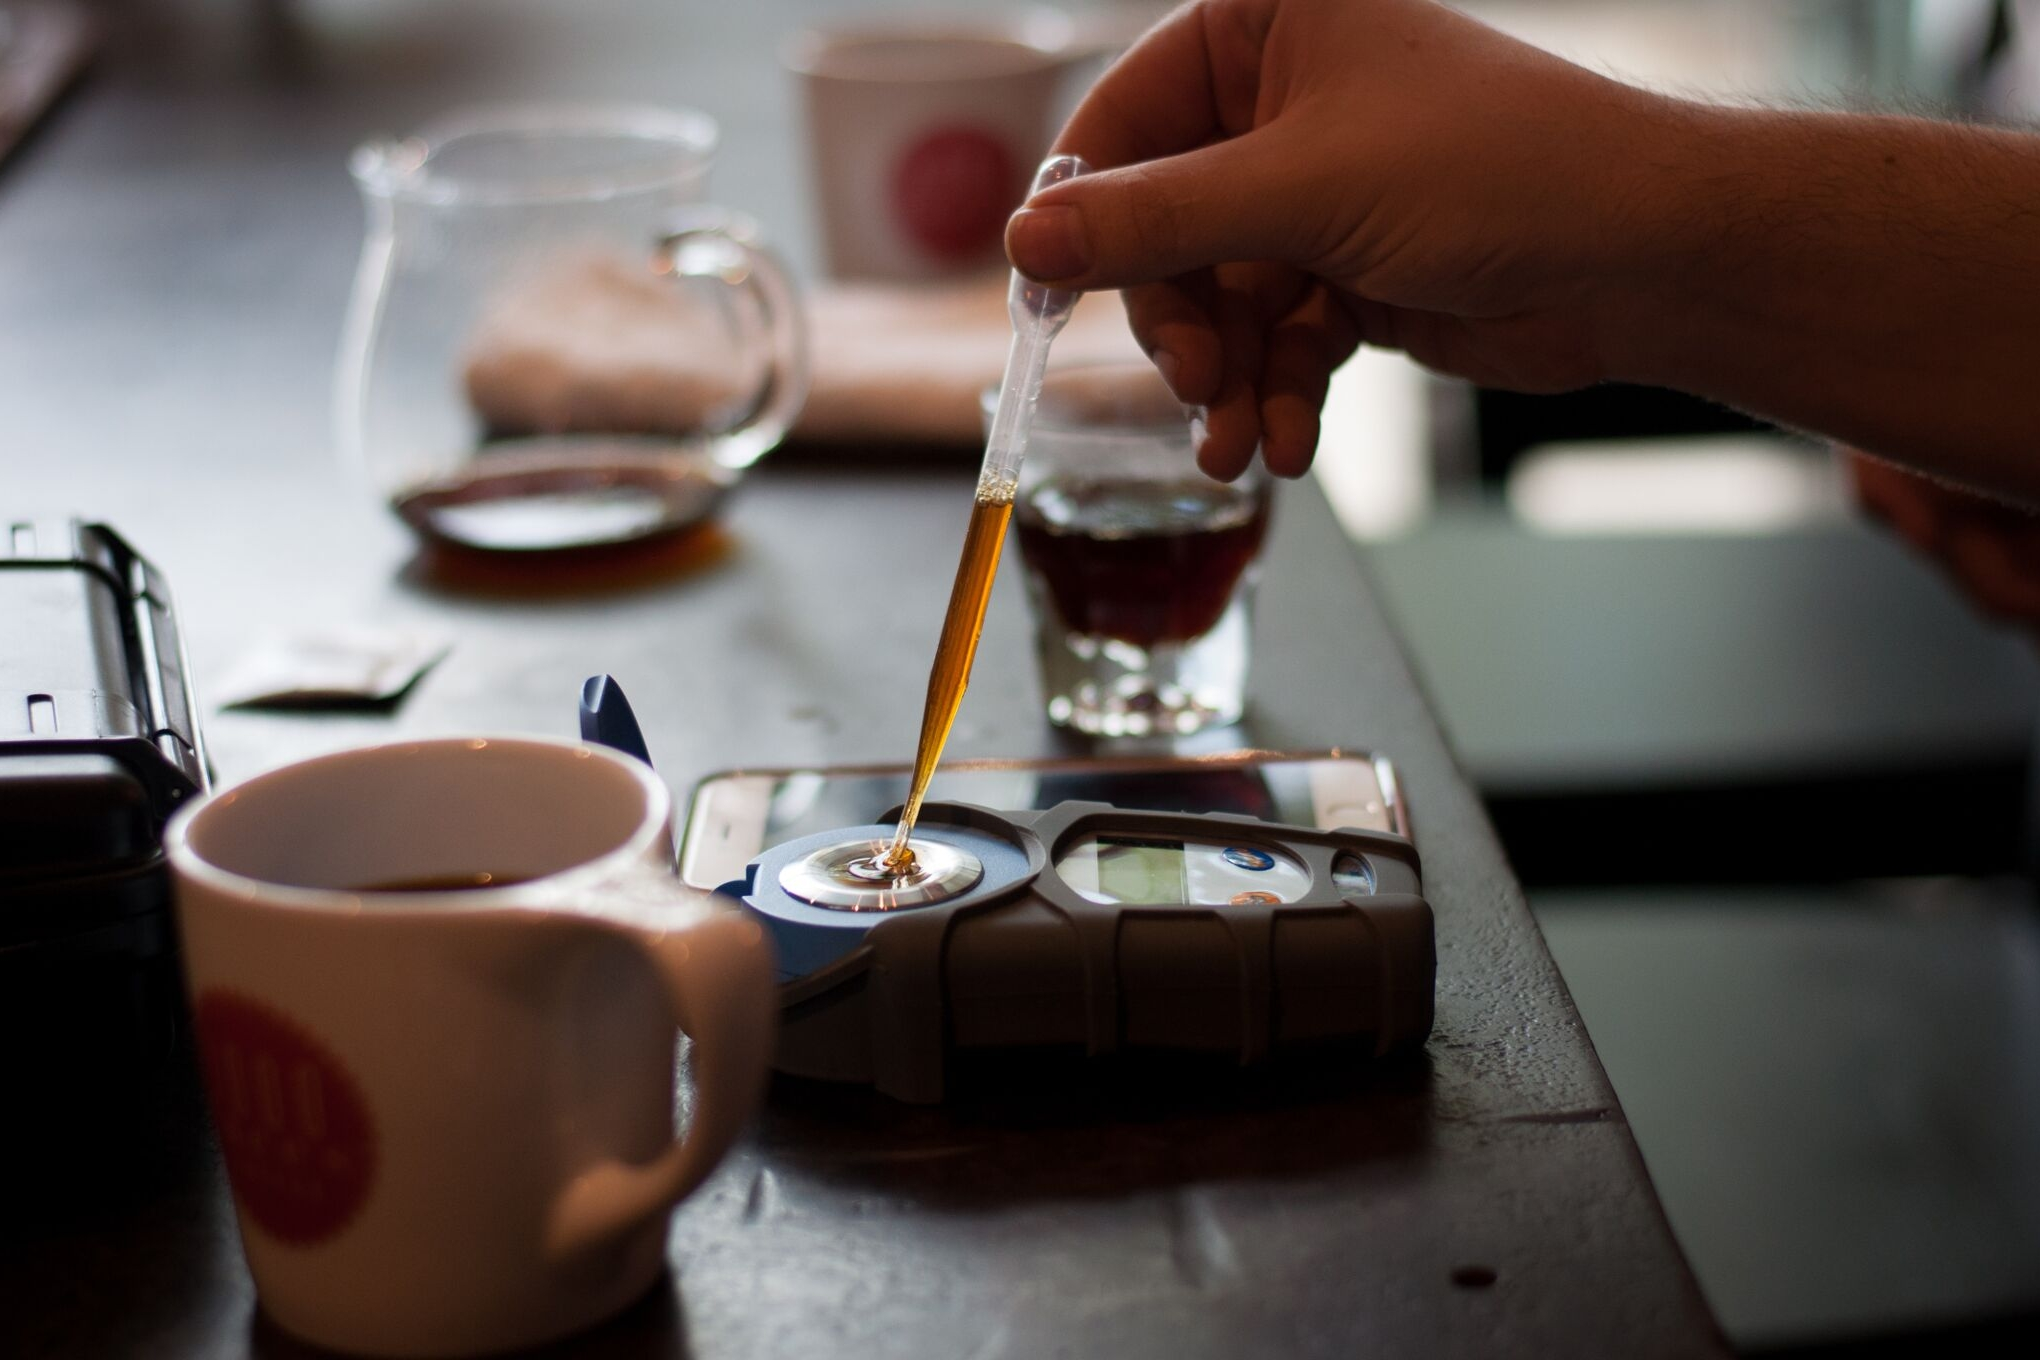 Quality has improved even further through cuppings and testing extraction.